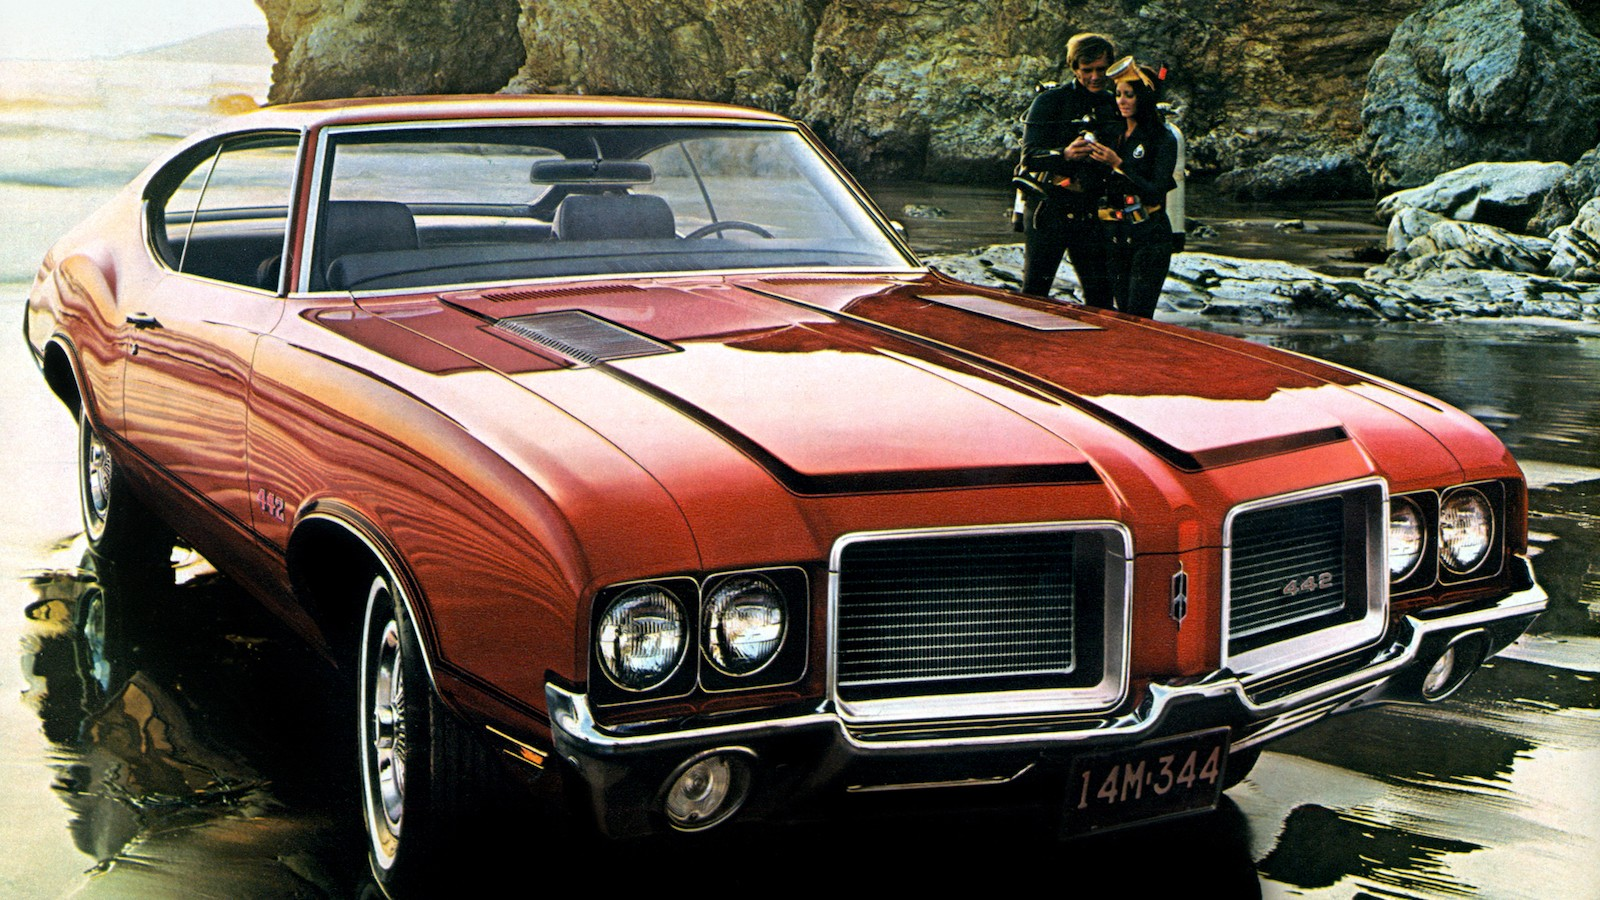 1970s muscle cars